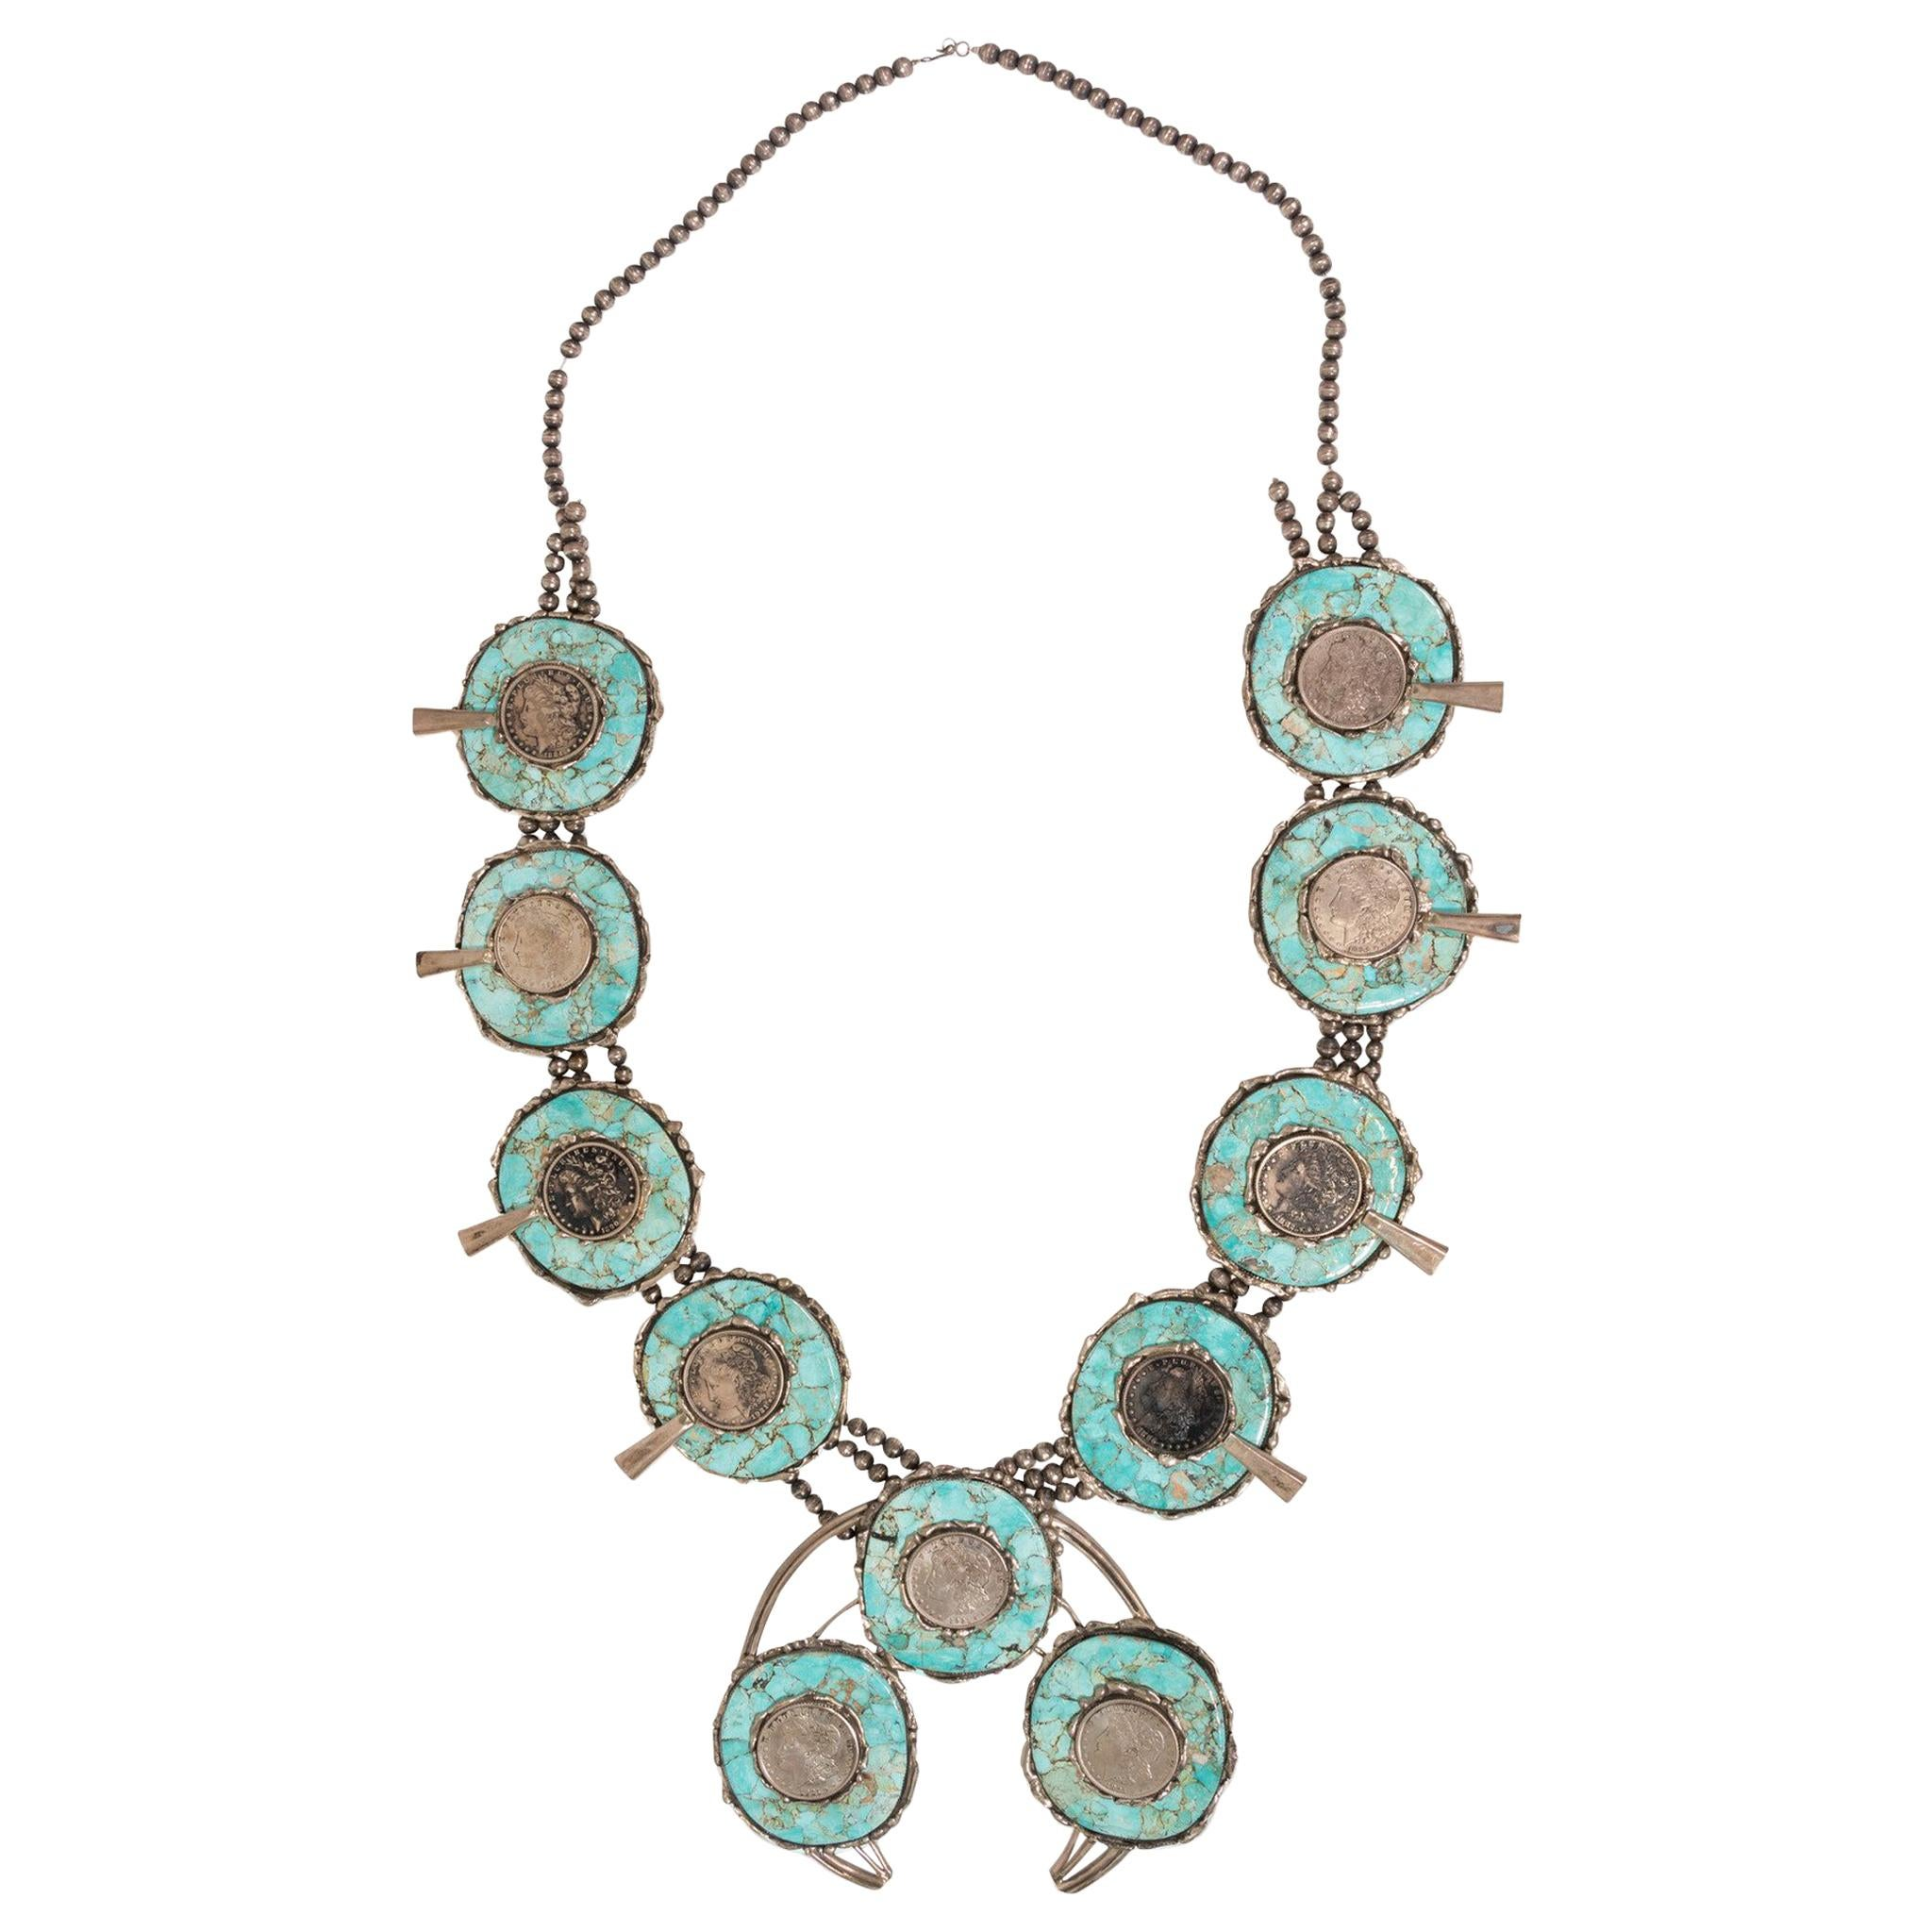 Silver Dollar Coin and Turquoise Squash Blossom Necklace